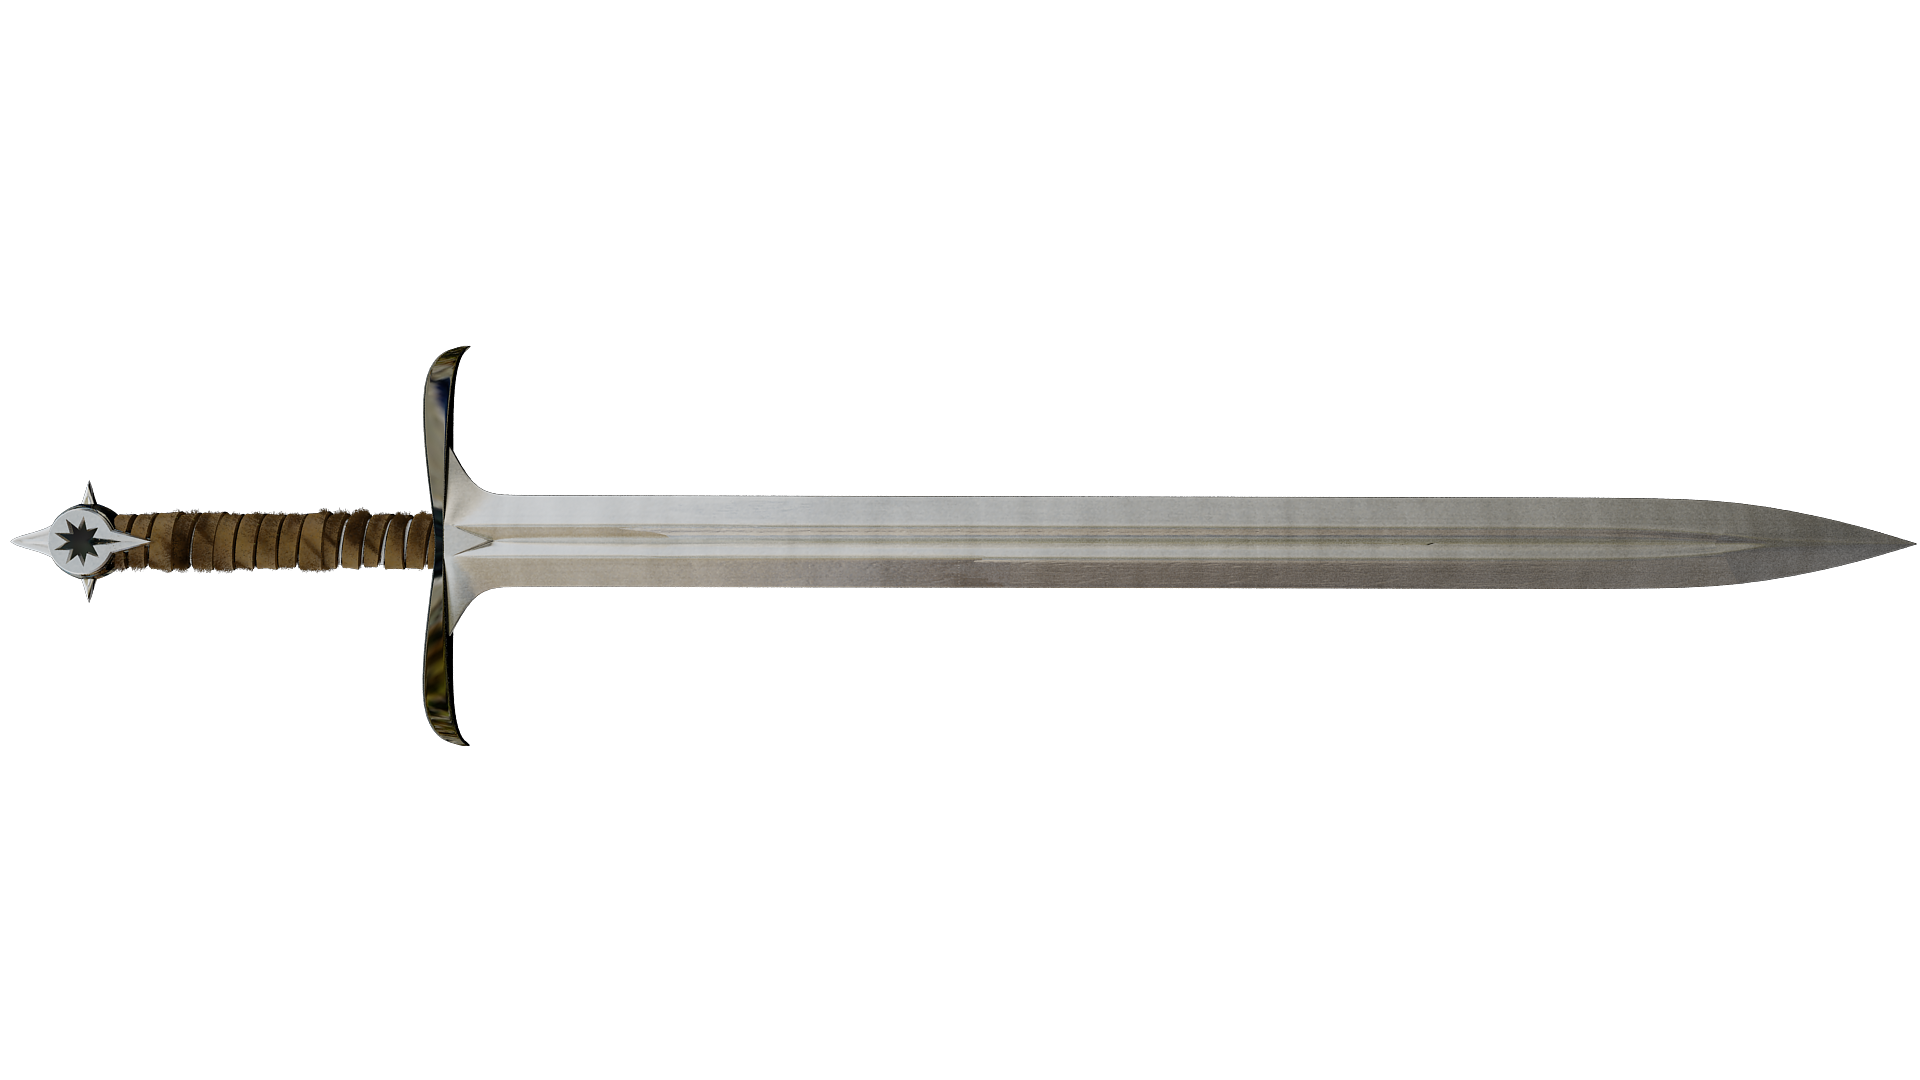 Serments d'Eurate - Page 2 Sword-hd-png-sword-png-image-1920